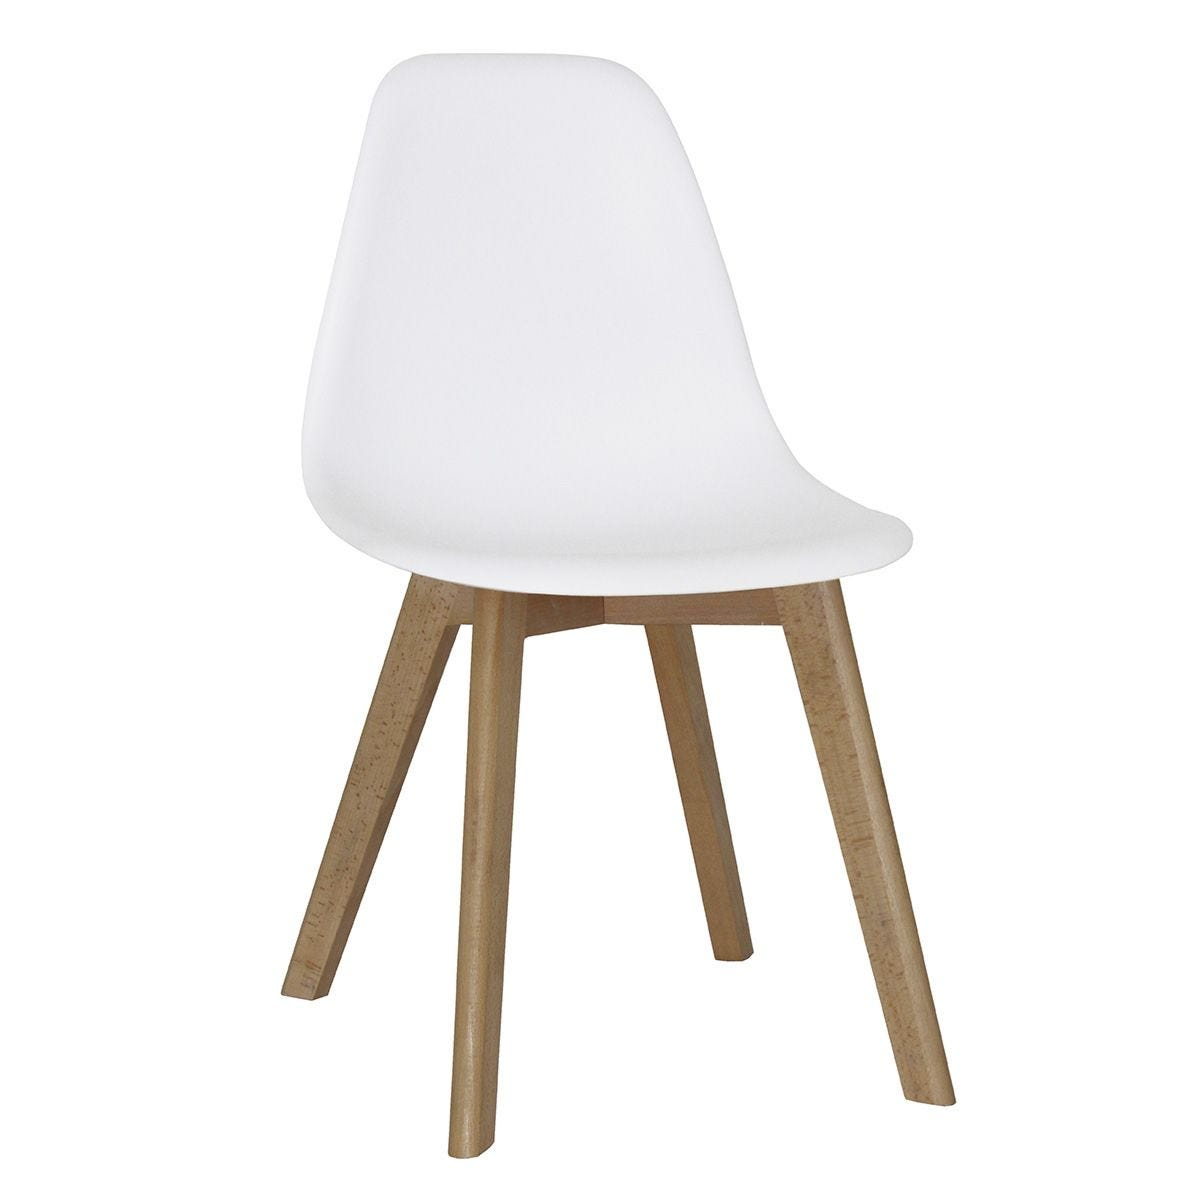 Set Of 4 Belgium Plastic Chairs with Solid Beech Legs White